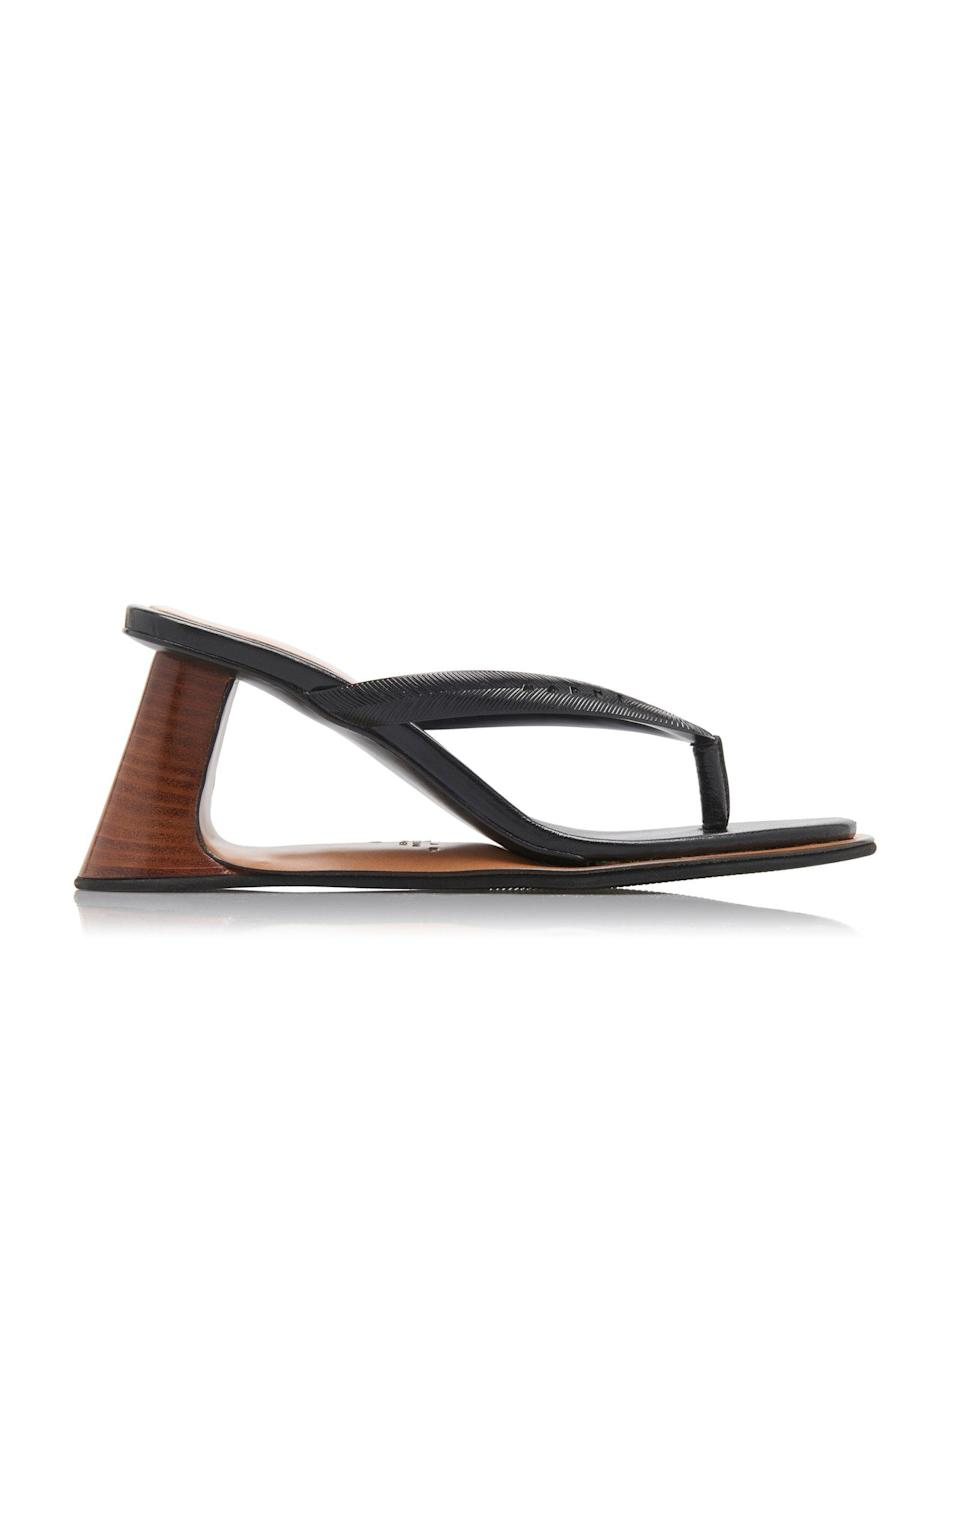 """<p><strong>Marni</strong></p><p>modaoperandi.com</p><p><strong>$890.00</strong></p><p><a href=""""https://go.redirectingat.com?id=74968X1596630&url=https%3A%2F%2Fwww.modaoperandi.com%2Fmarni-ss20%2Freverse-leather-thong-sandals&sref=https%3A%2F%2Fwww.harpersbazaar.com%2Ffashion%2Ftrends%2Fg31749966%2Fsummer-2020-shoe-trends%2F"""" rel=""""nofollow noopener"""" target=""""_blank"""" data-ylk=""""slk:Shop Now"""" class=""""link rapid-noclick-resp"""">Shop Now</a></p><p>Is it a heel? Is it a wedge? We'll let you decide.</p>"""